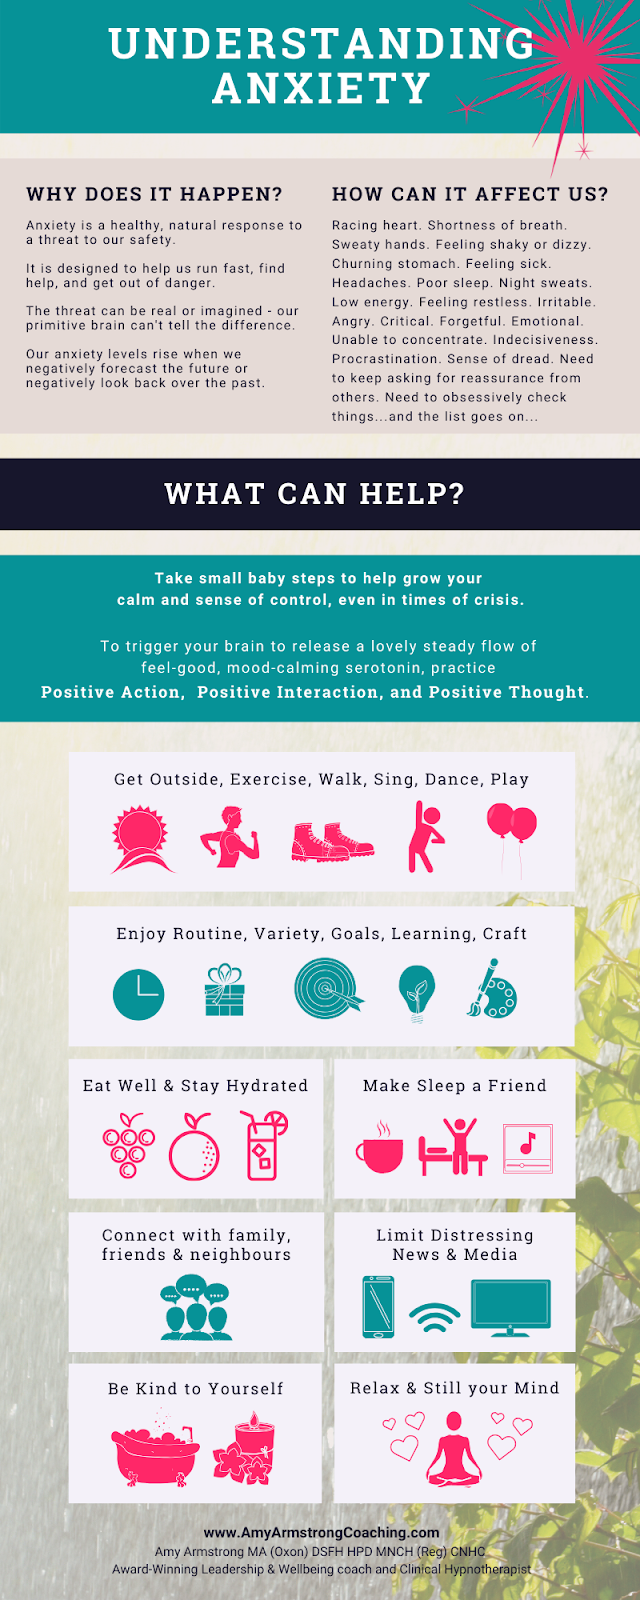 Understanding Anxiety infographic